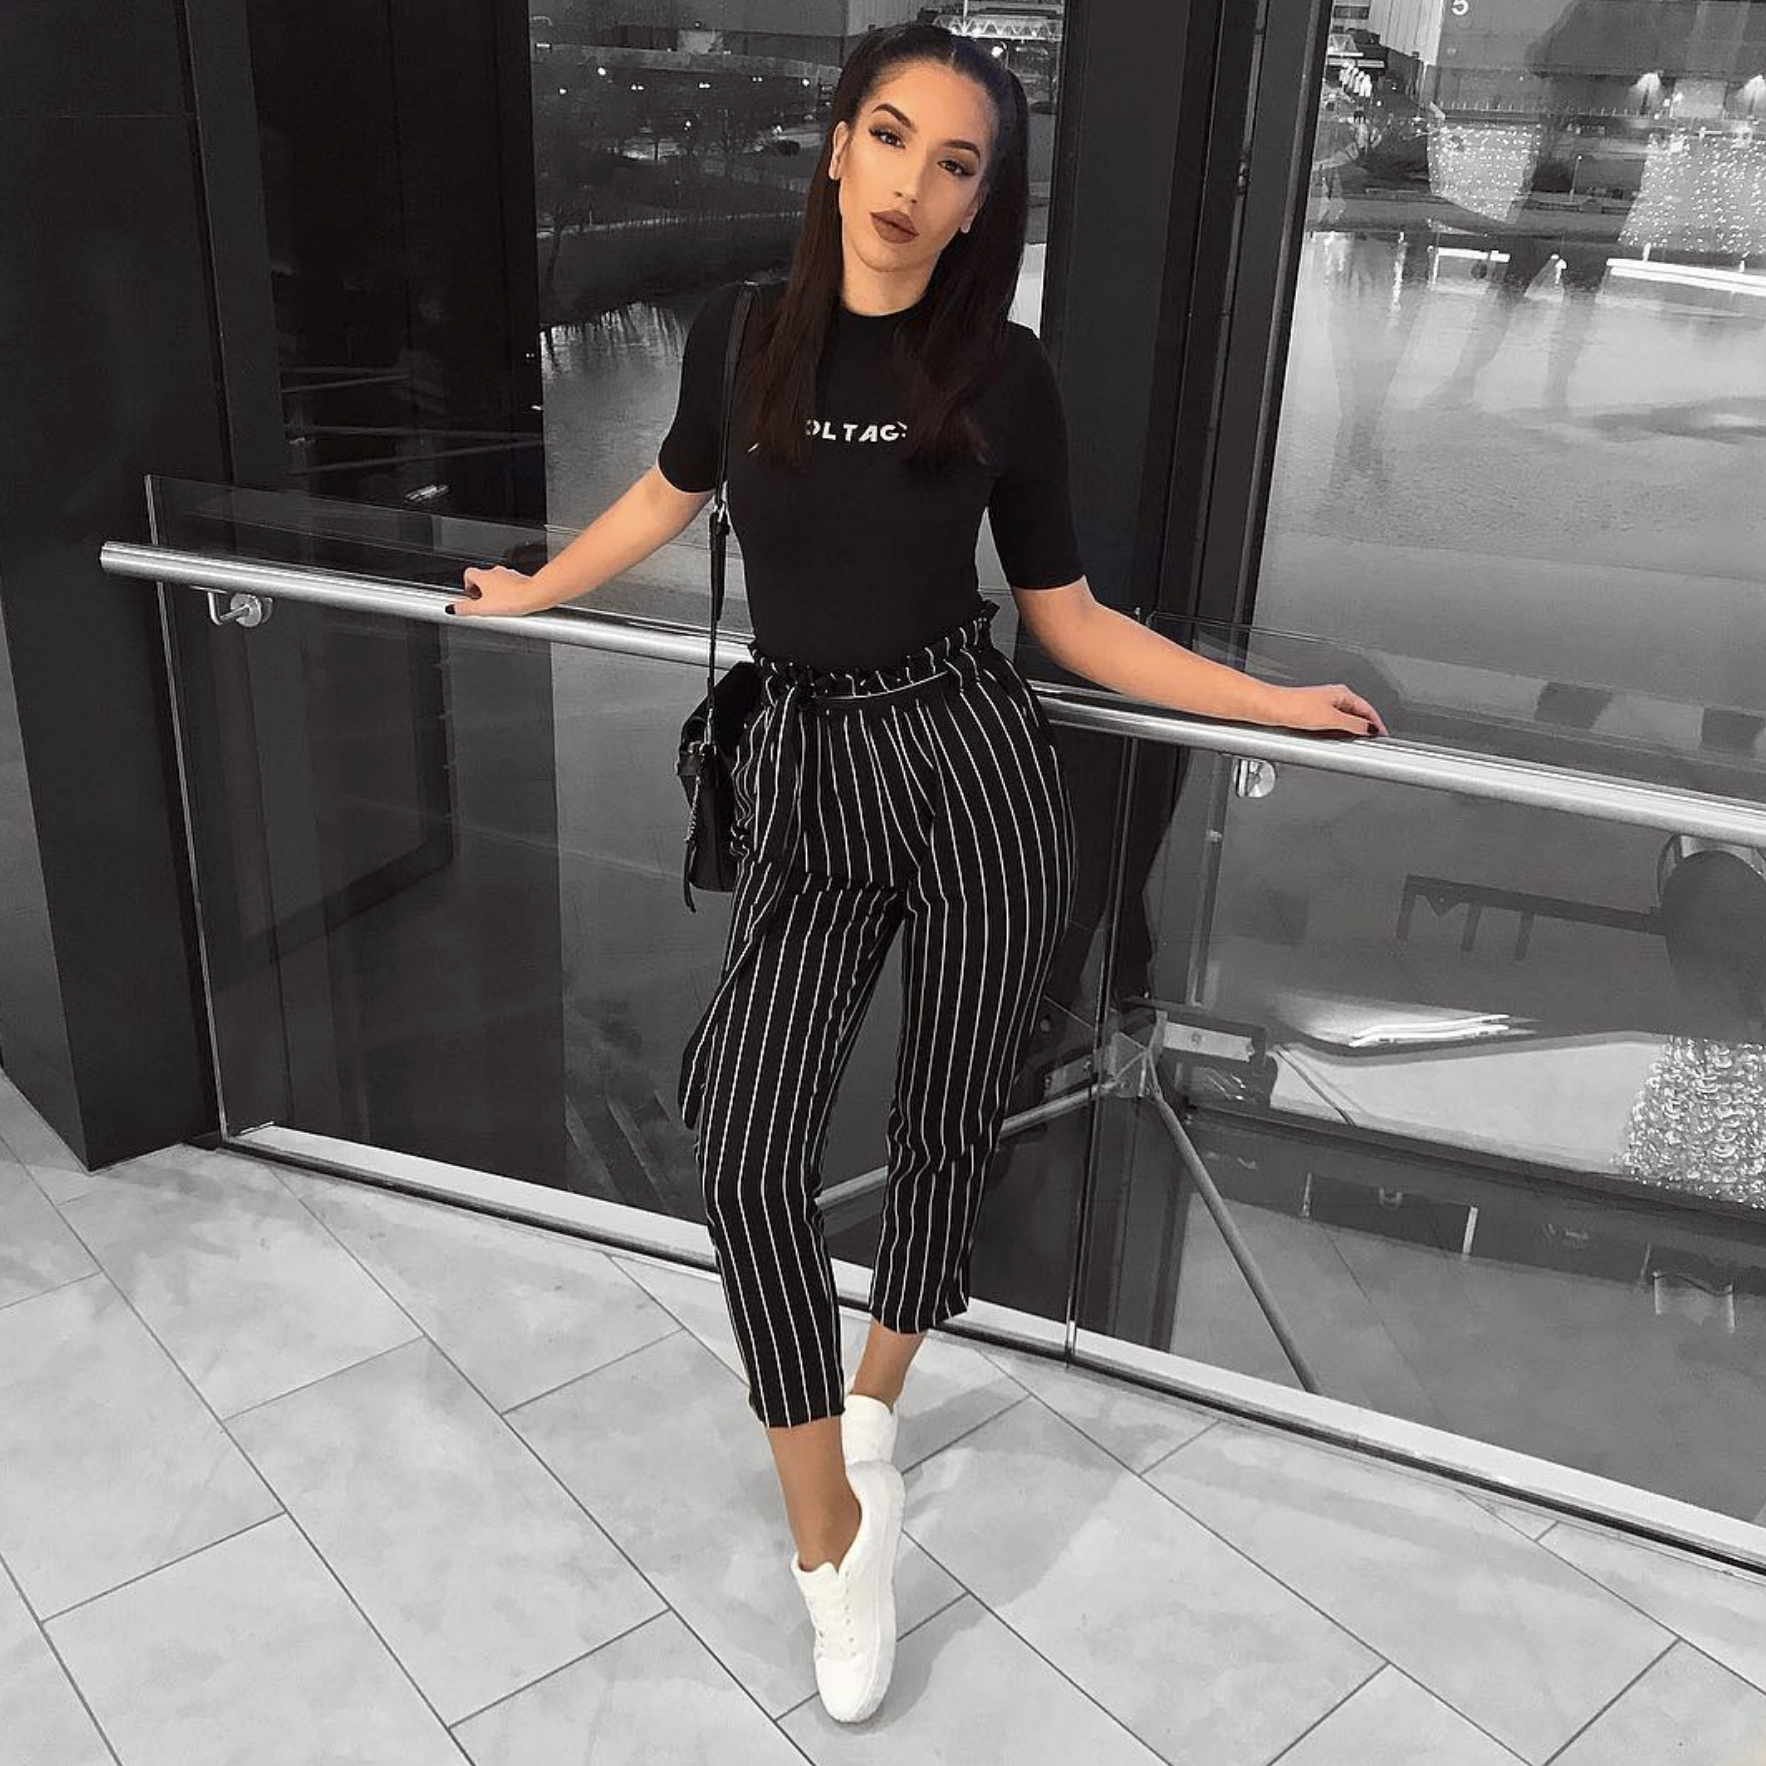 Marcela Pants Black White Fashion Nova Novababes